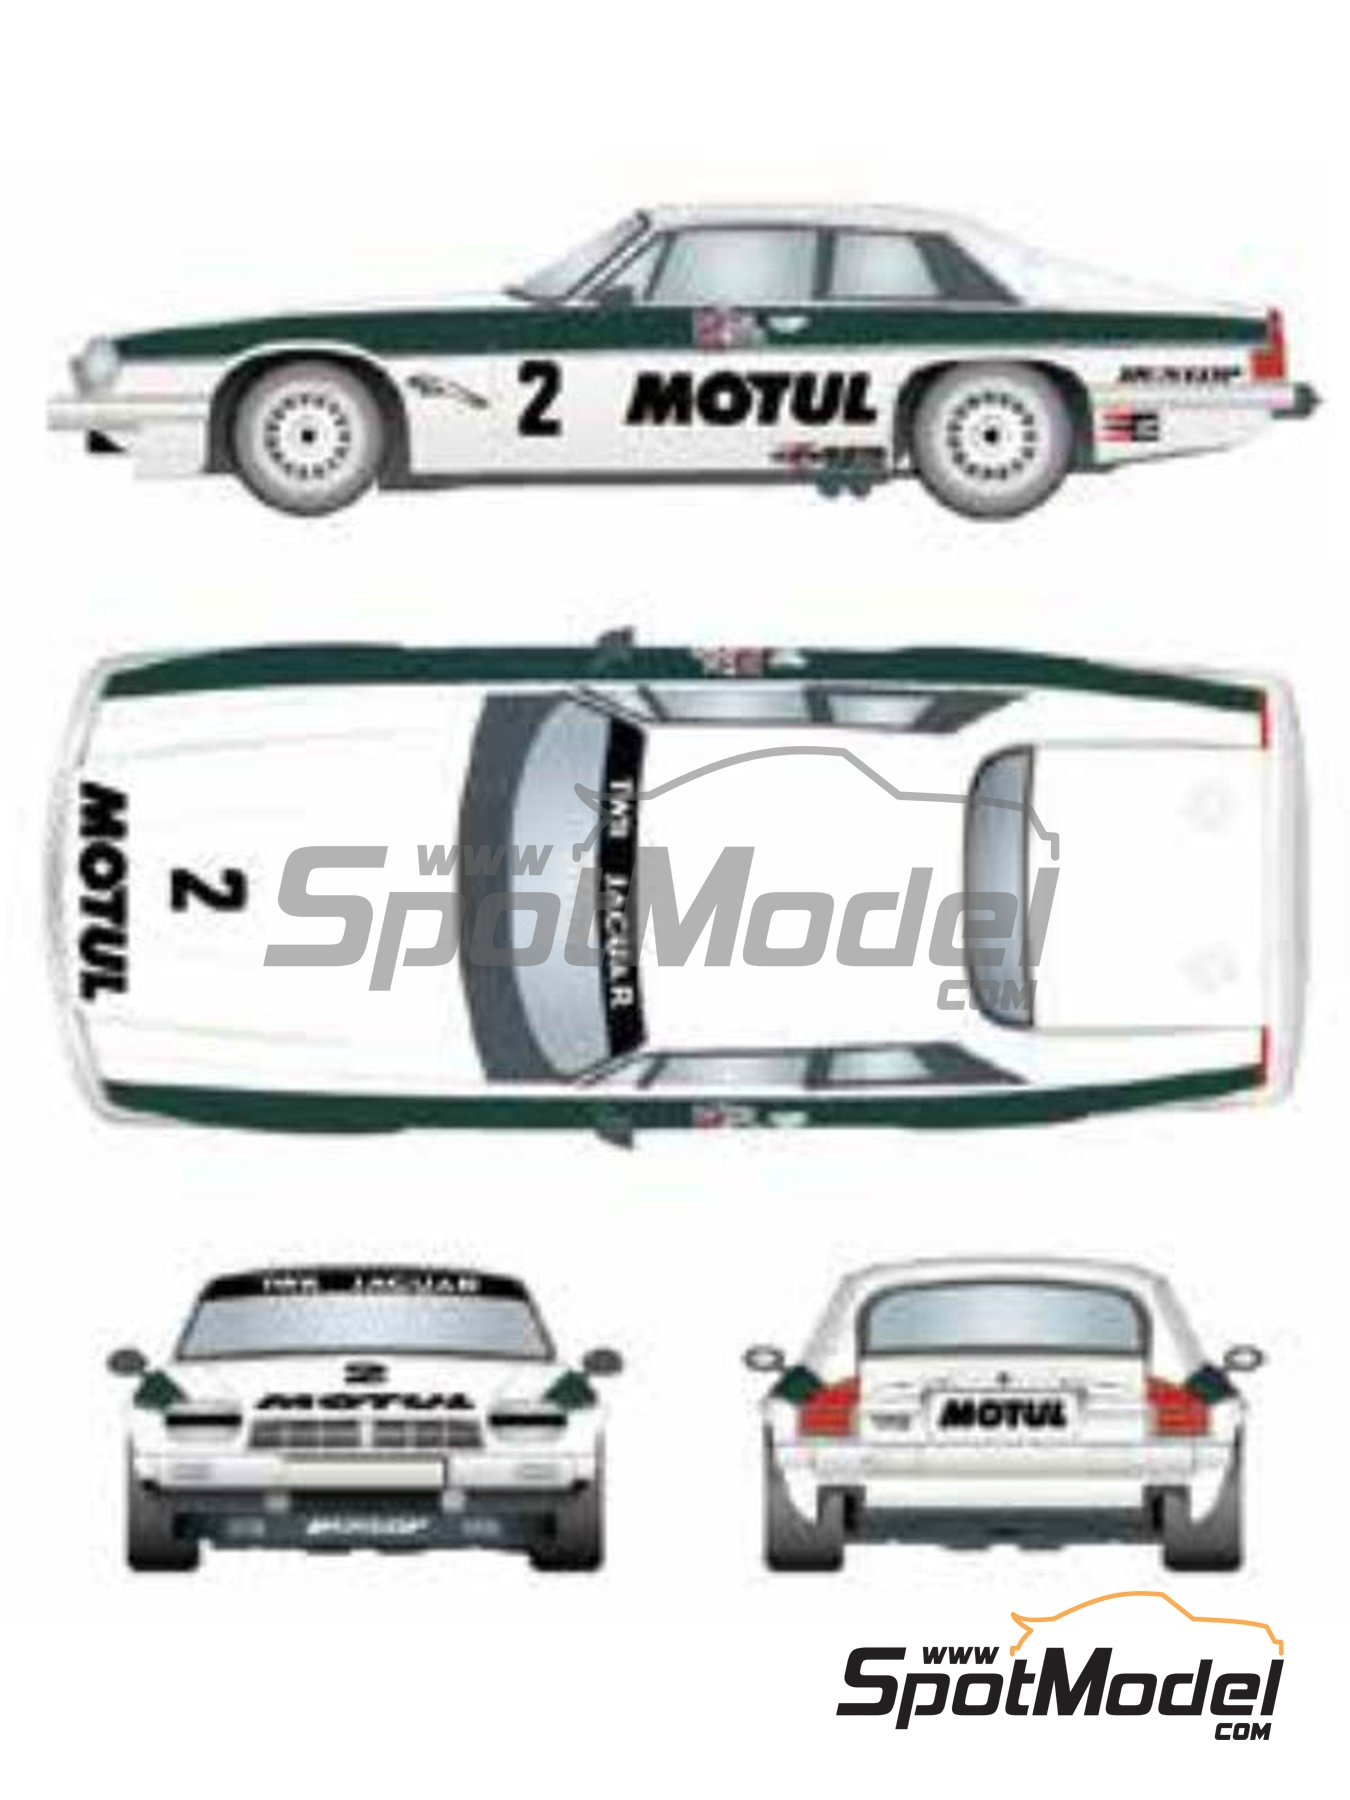 Jaguar XJ-S Motul TWR Jaguar Racing - Brno Formula 1 Grand Prix 1983 | Marking / livery in 1/24 scale manufactured by Studio27 (ref. ST27-DC1202) image